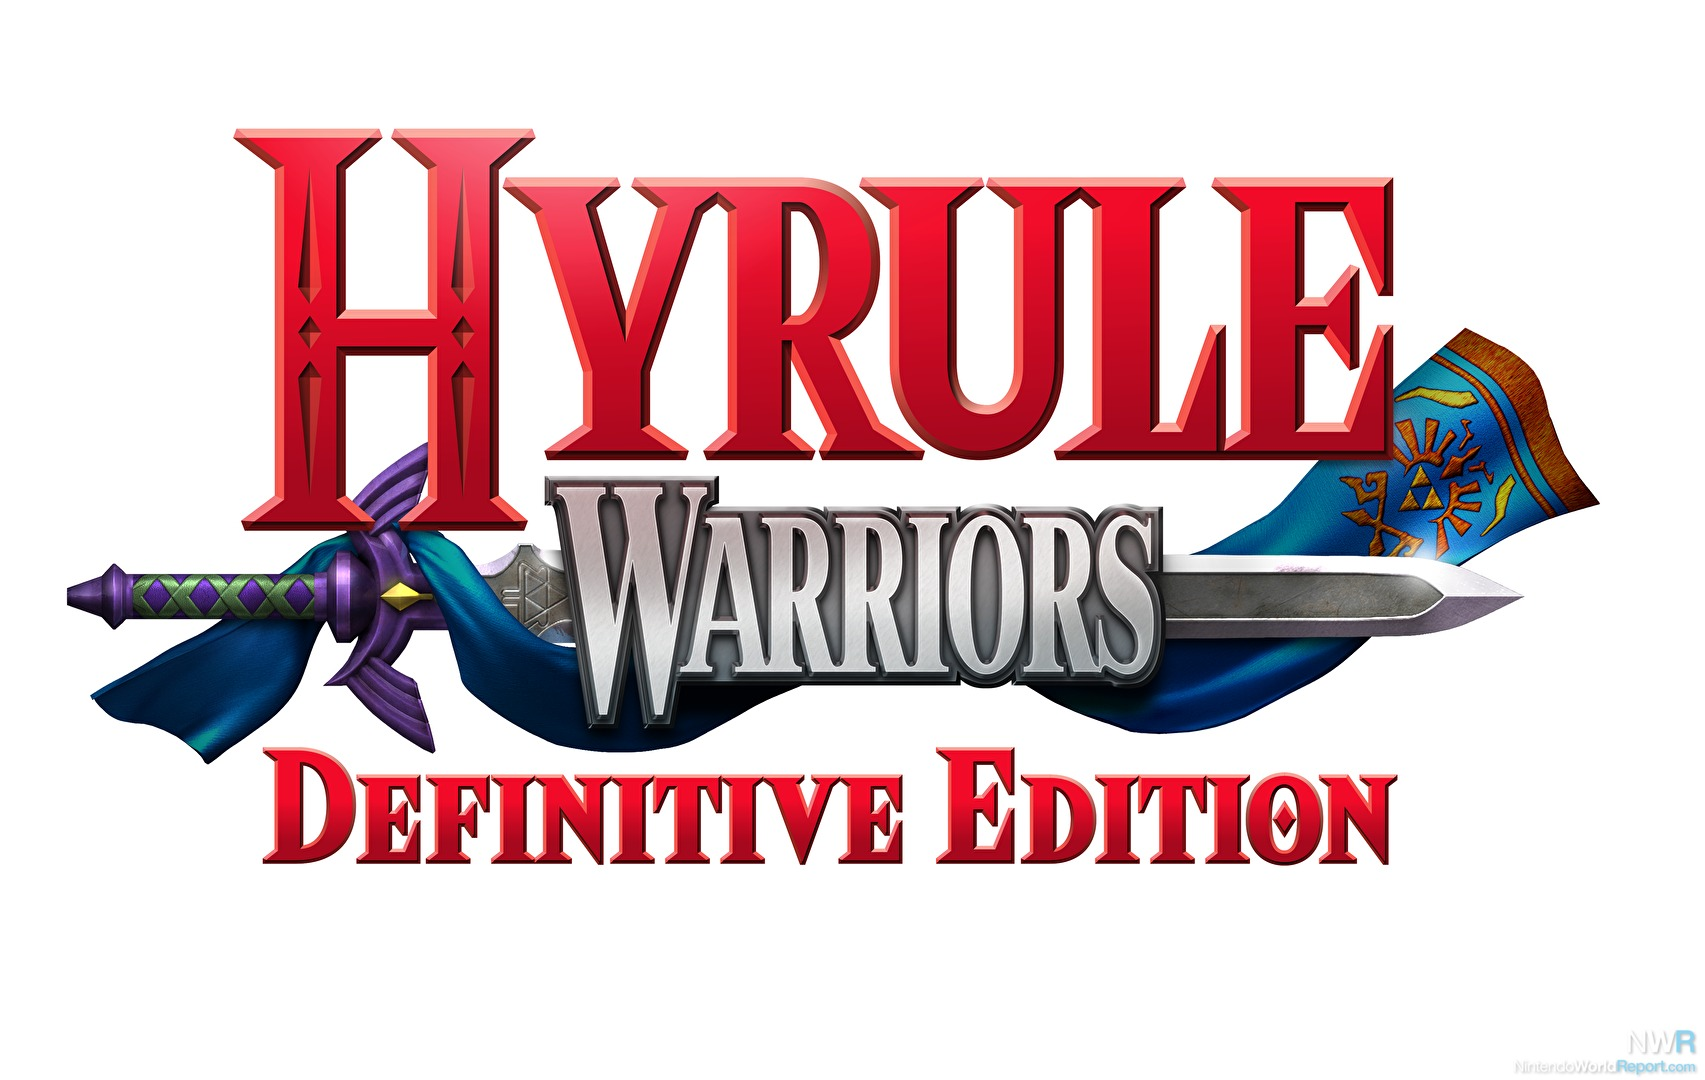 Nintendo announces Hyrule Warriors: Definitive Edition for Nintendo Switch